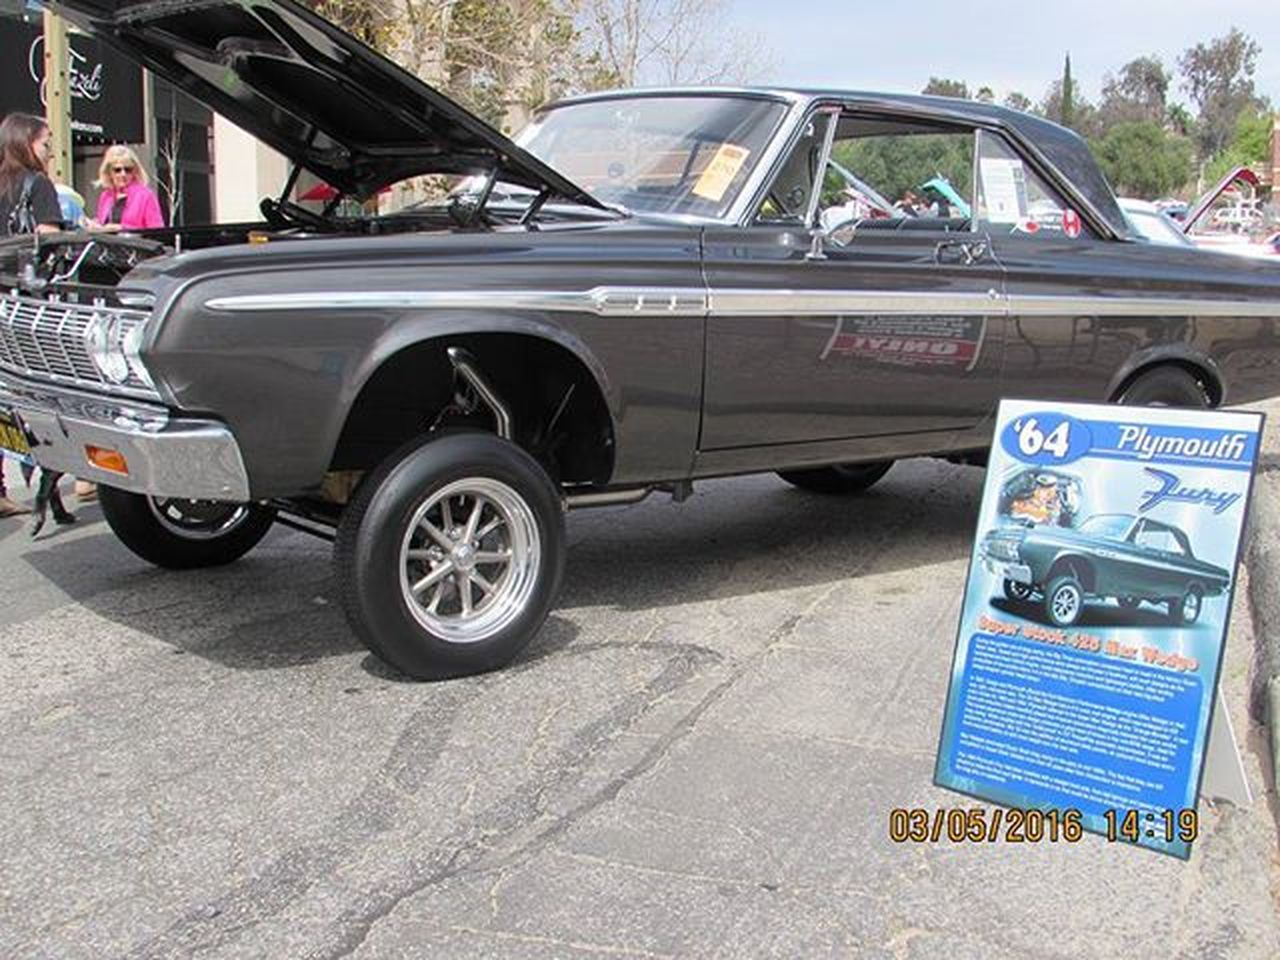 The 1964 Plymouth Fury need it say anything more 😈 Temecula Rodrun 2016 Workflow Autodetailing ABC7Eyewitness Managment PATIENTSONLY Caviargold Ccifam Medicated Bjj Bdubfam Bodyboarder Surfer Extremesports Fit StonertypeA Prop215sb420 Alternativemedicine Fibromyalgia Chronicpainwarrior ptsdawareness ptsd